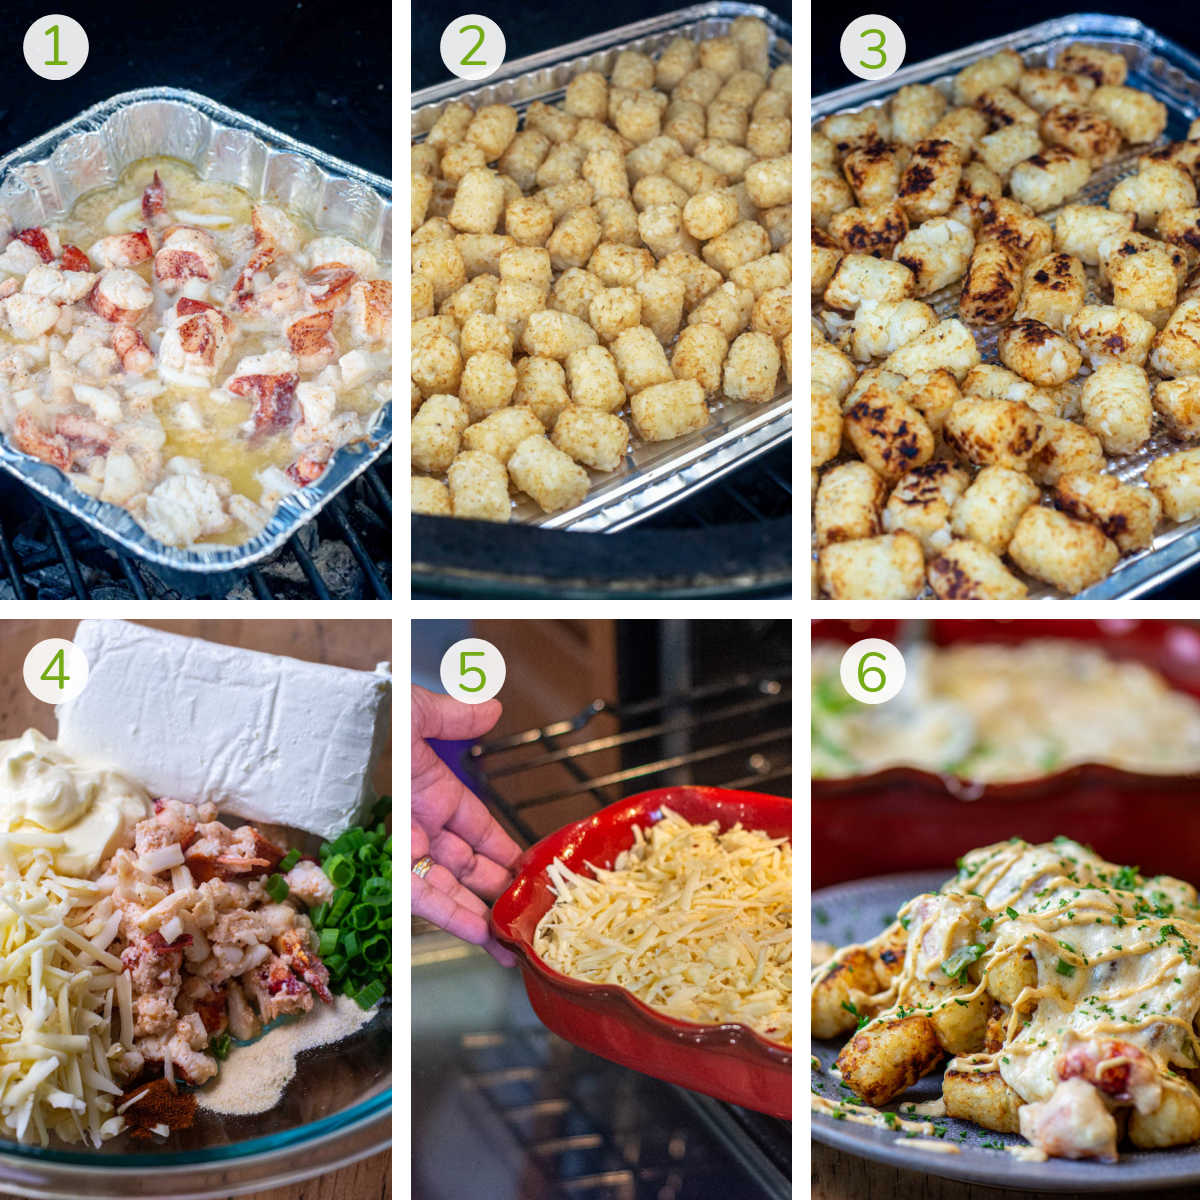 six photos showing grilling the mixed seafood, then the tater tots, making the dip and layer over the tots on a plate.